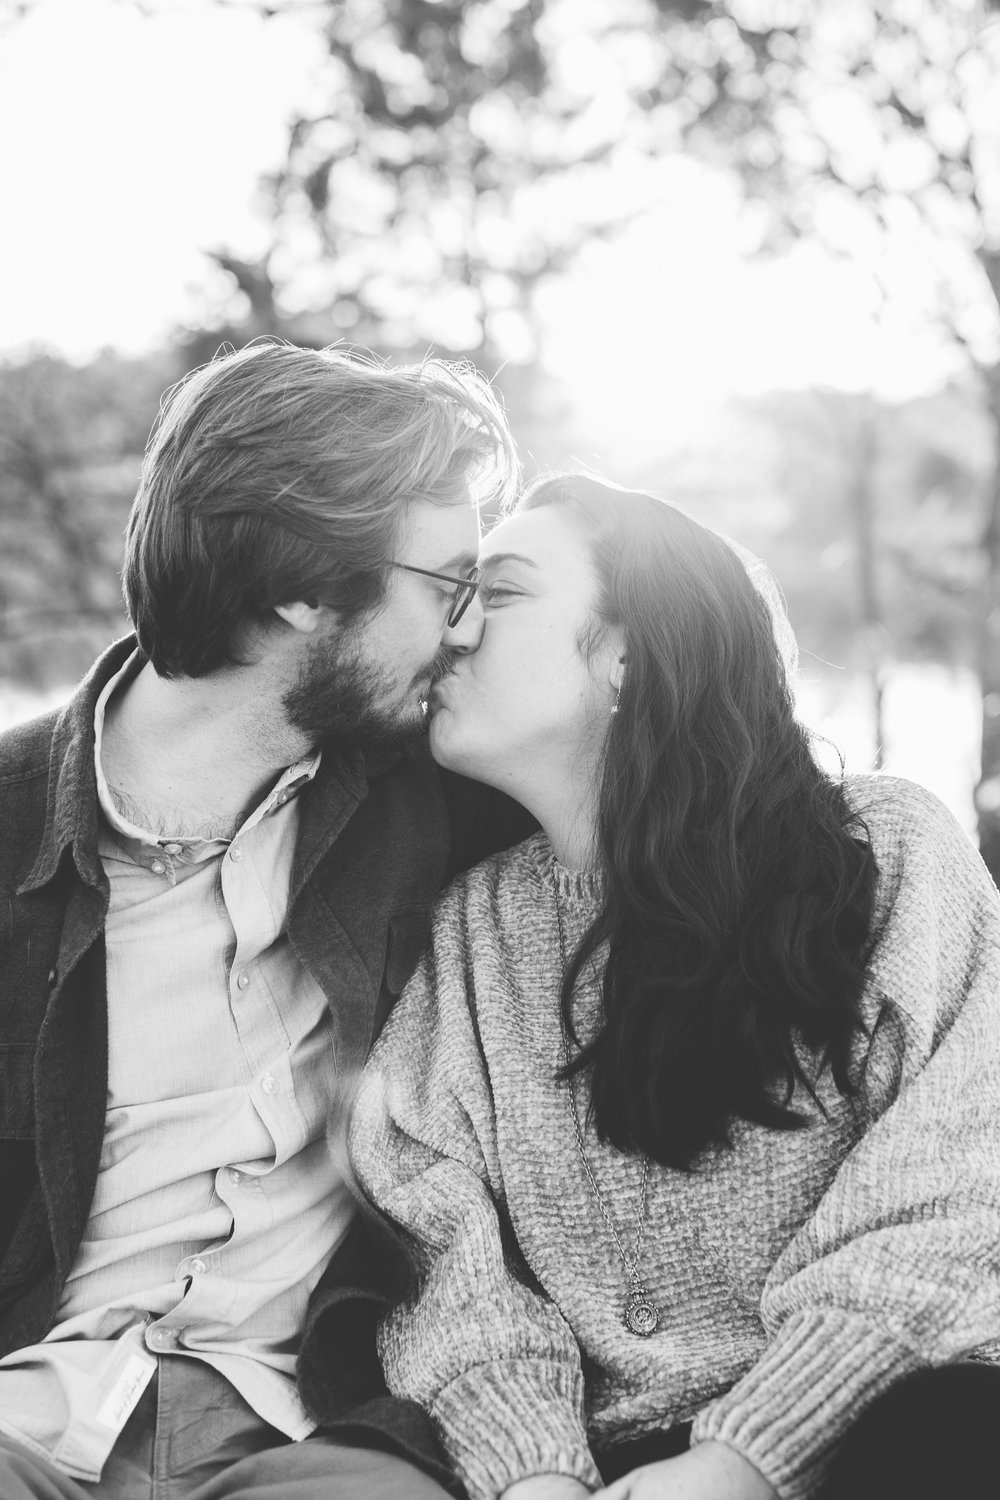 Knoxville Winter Engagement Session on the River // Suzy Collins Photography